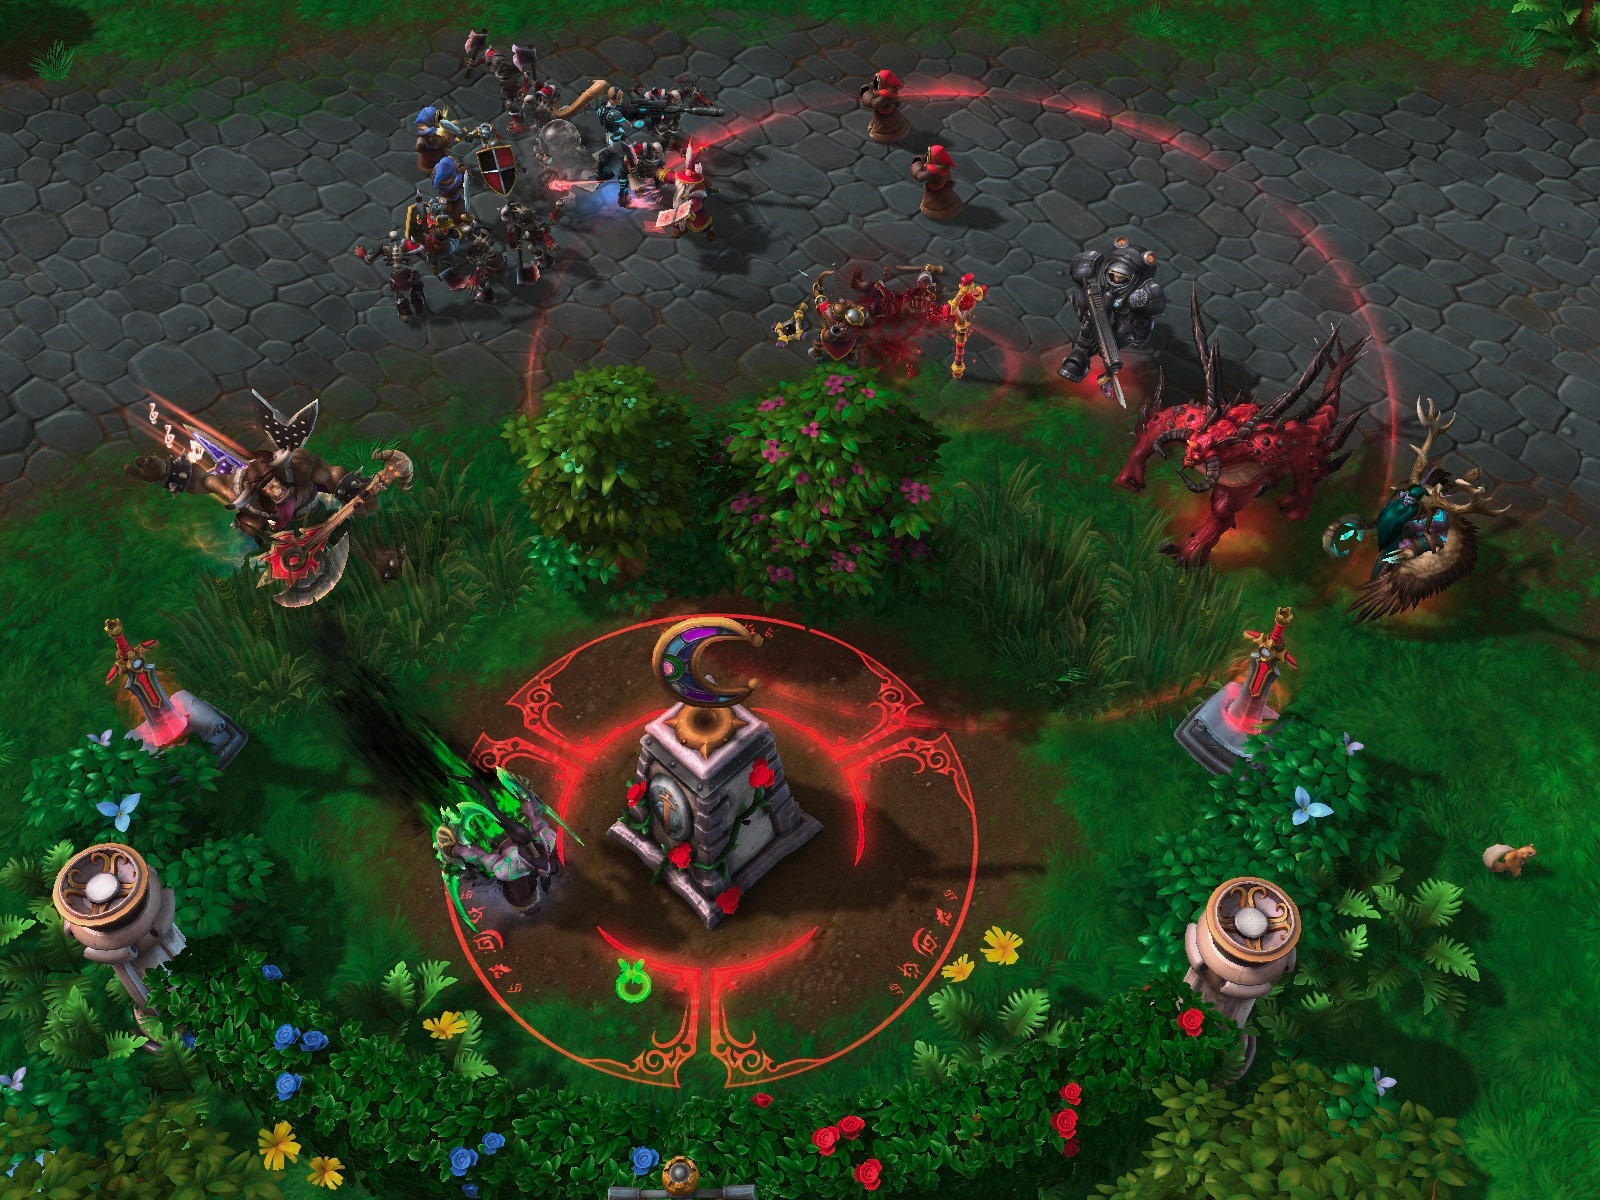 Heroes Of The Storm: Universes Collide In First Gameplay Trailer And Screenshots #29619